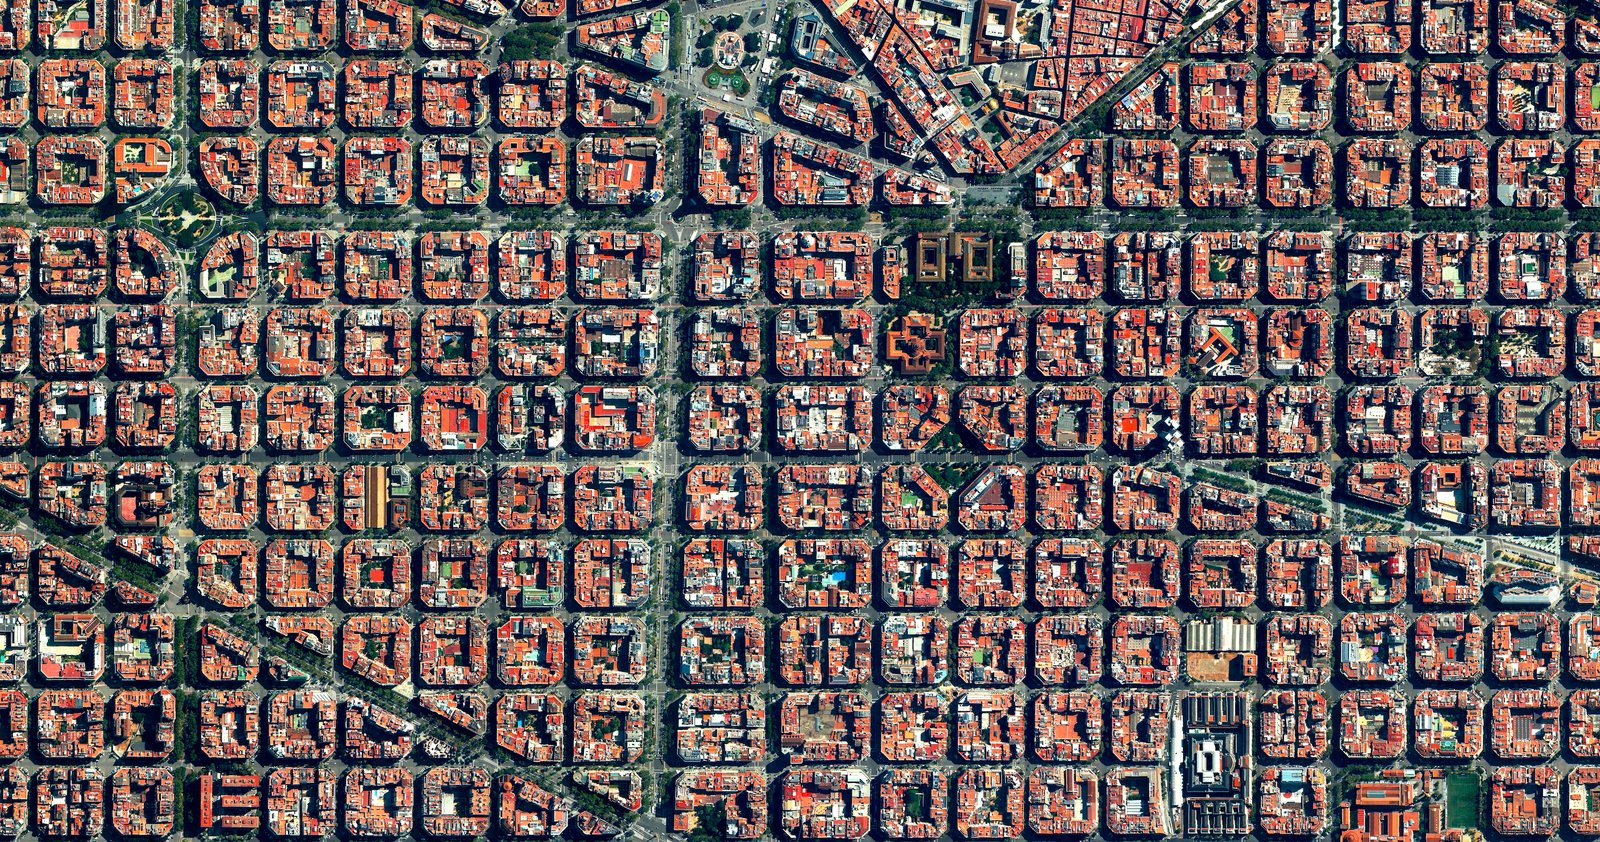 Clusters of housing with communal courtyards are placed along a strict grid pattern in Barcelona's Eixample district, shown here. Reprinted with permission from Overview by Benjamin Grant, copyright (c) 2016. Published by Amphoto Books, a division of Penguin Random House, Inc. Images (c) 2016 by DigitalGlobe, Inc.